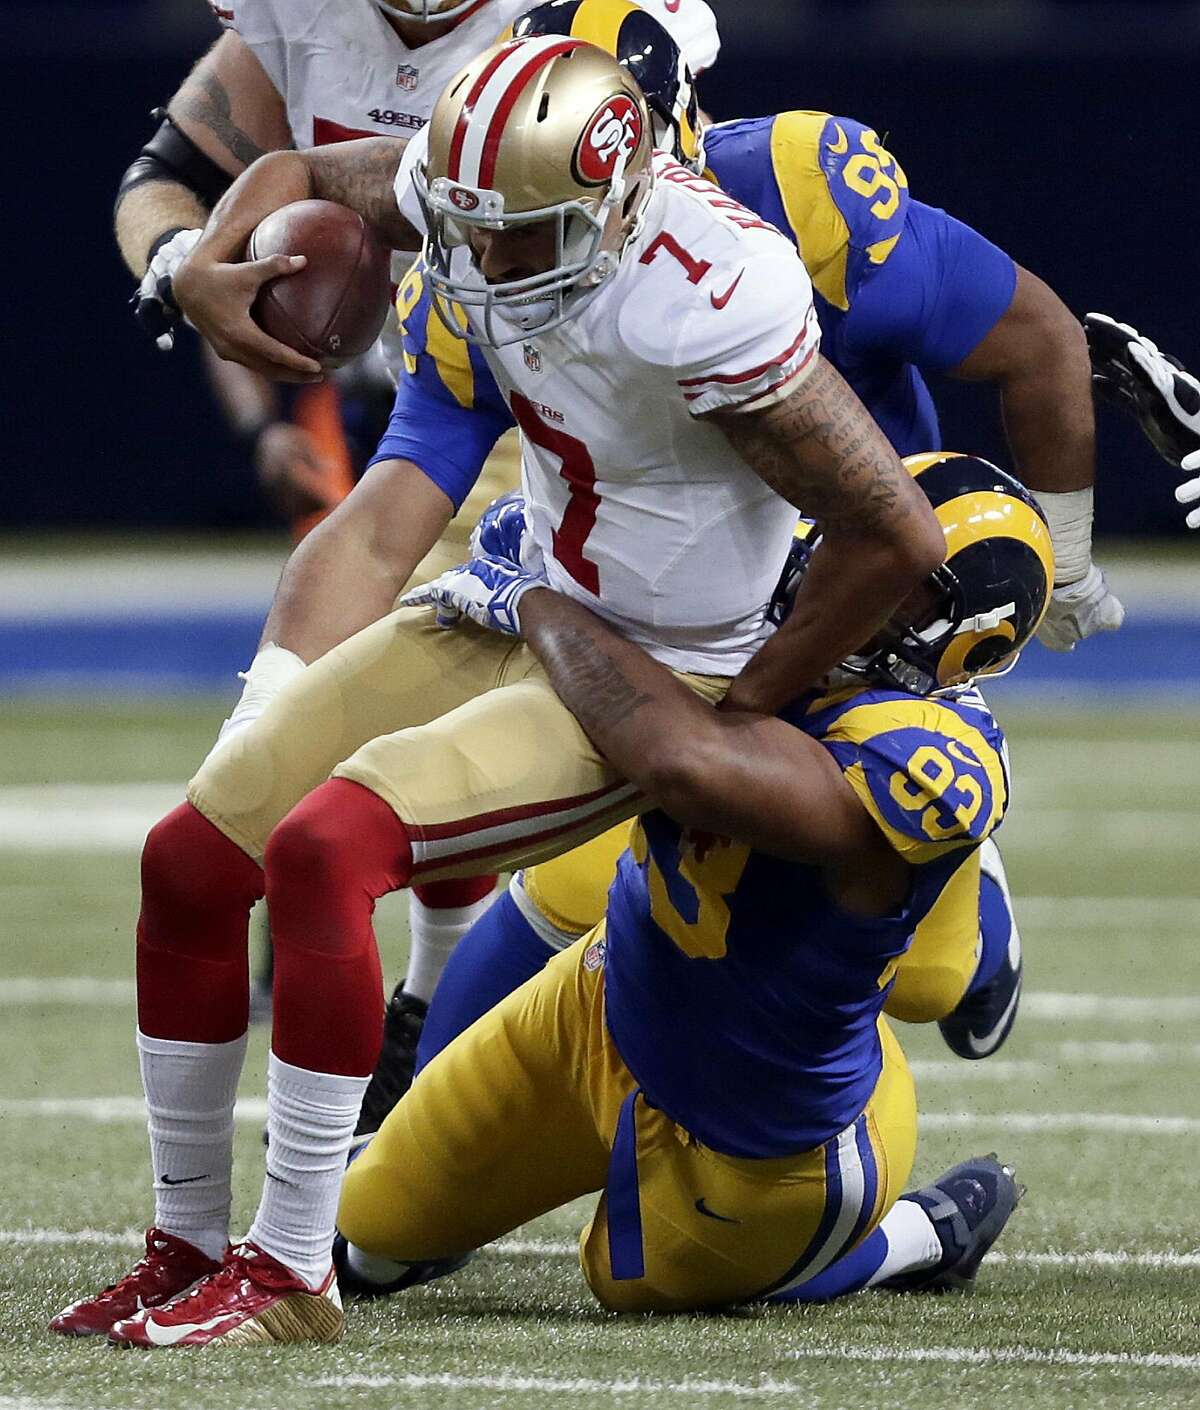 San Francisco 49ers quarterback Colin Kaepernick (7) is sacked for a 3-yard loss by St. Louis Rams defensive tackle Ethan Westbrooks during the fourth quarter of an NFL football game, Sunday, Nov. 1, 2015, in St. Louis.